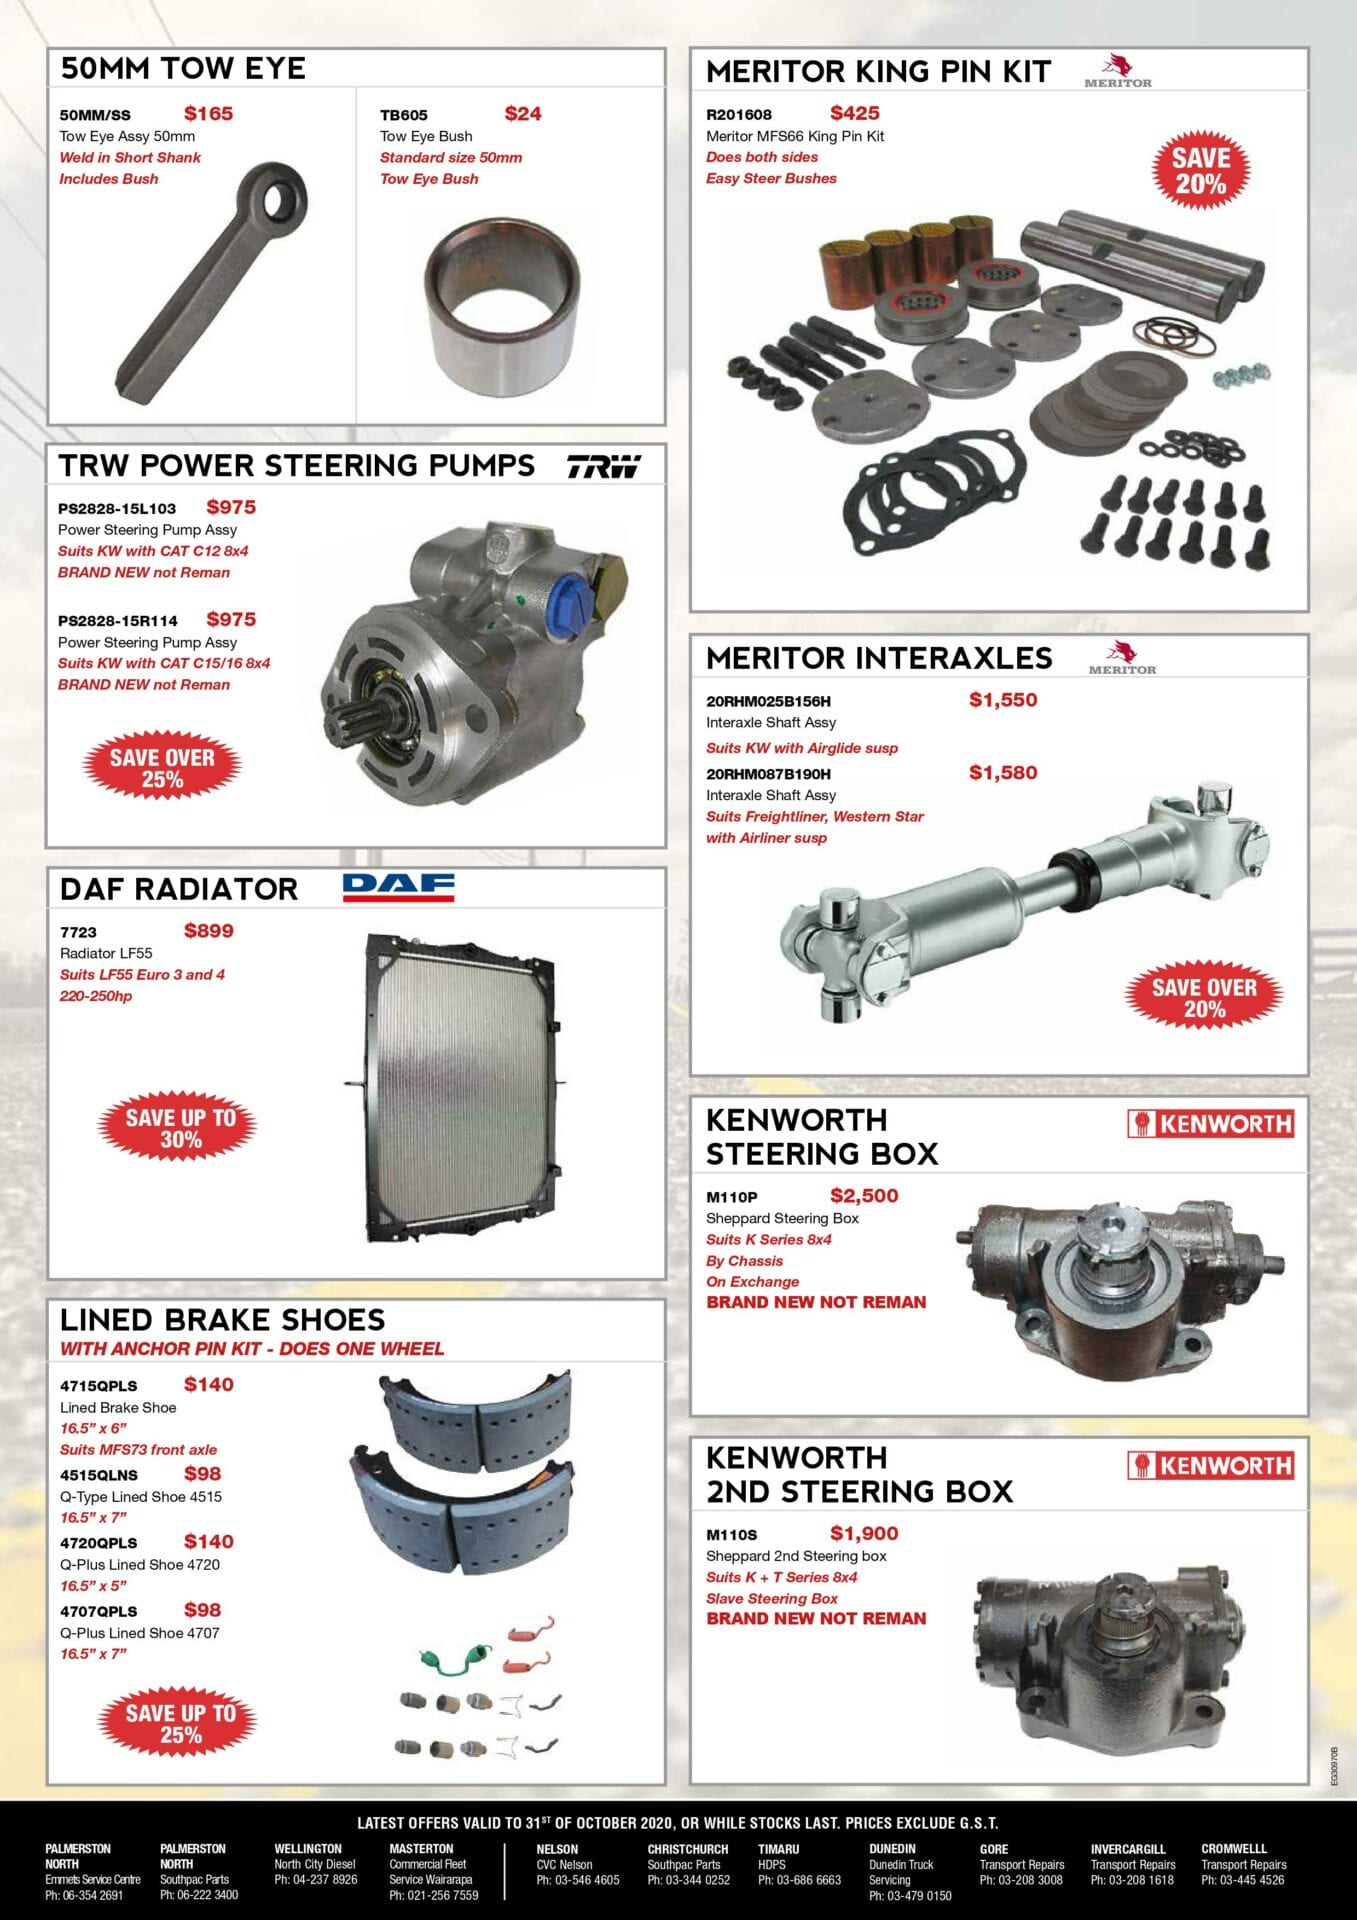 LATEST OFFERS advert – October 2020 (pg2)